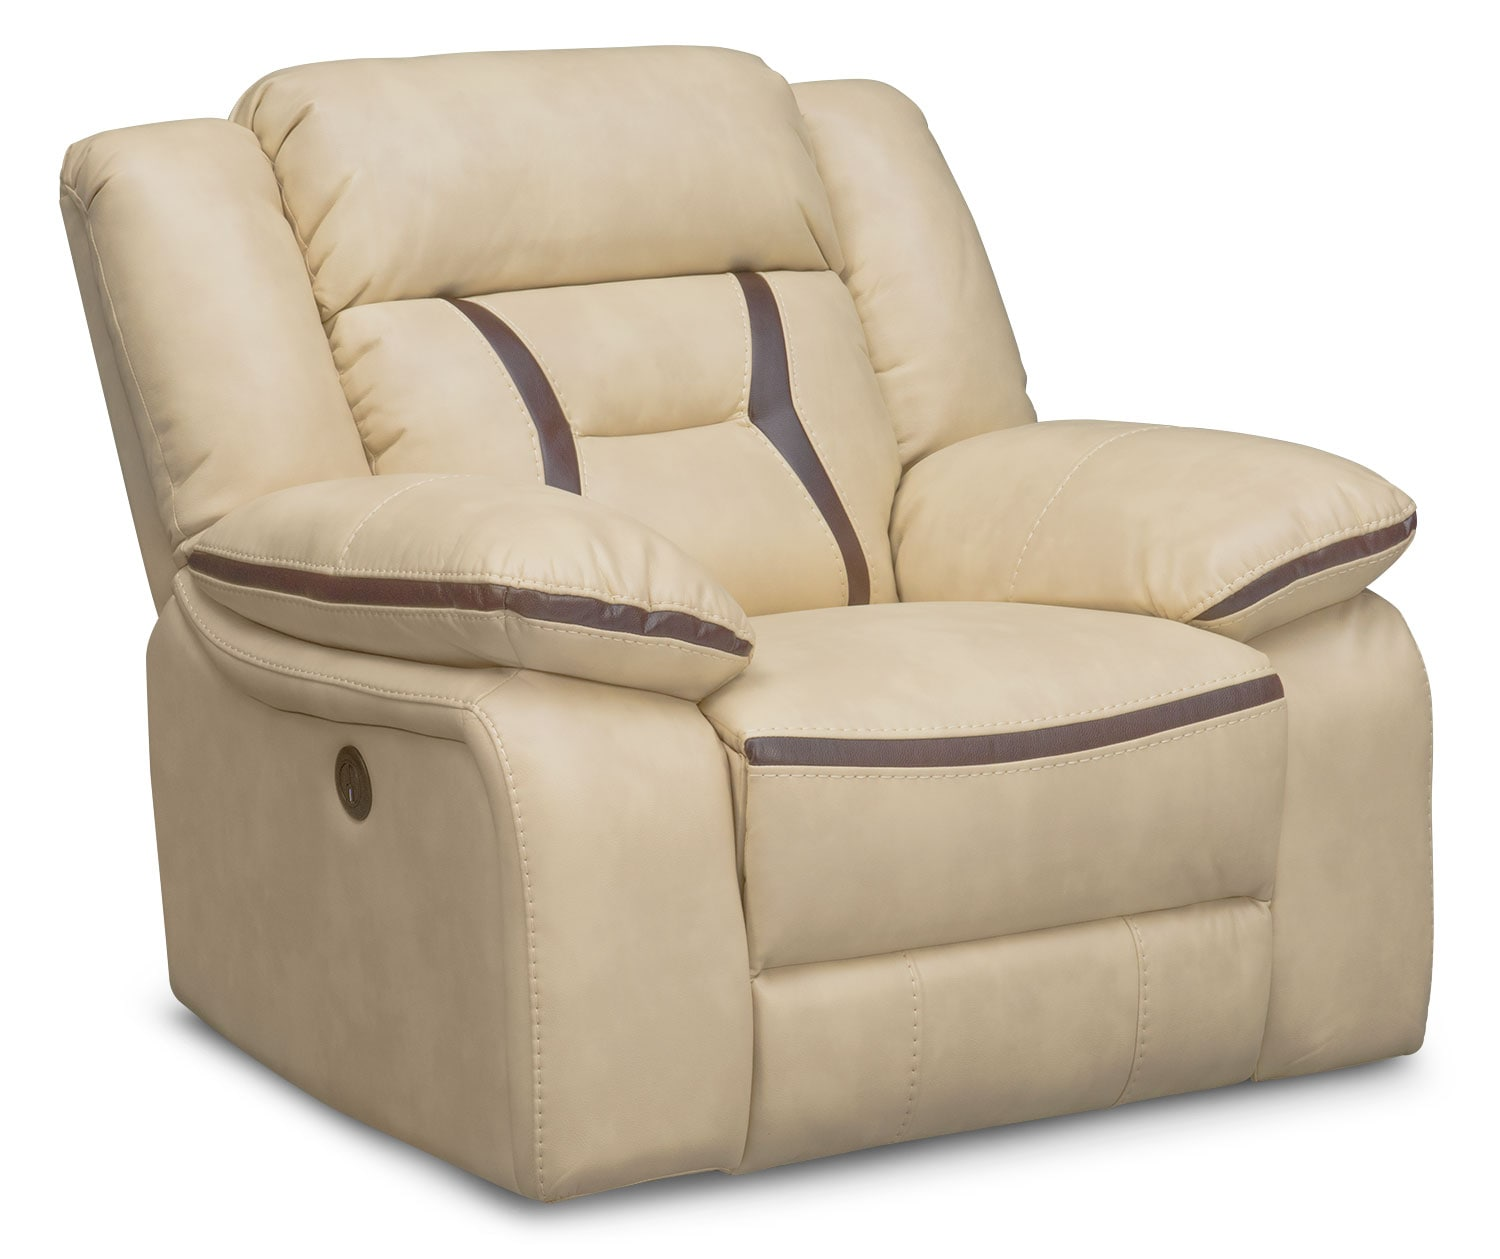 Living Room Furniture - Remi Power Glider Recliner - Cream